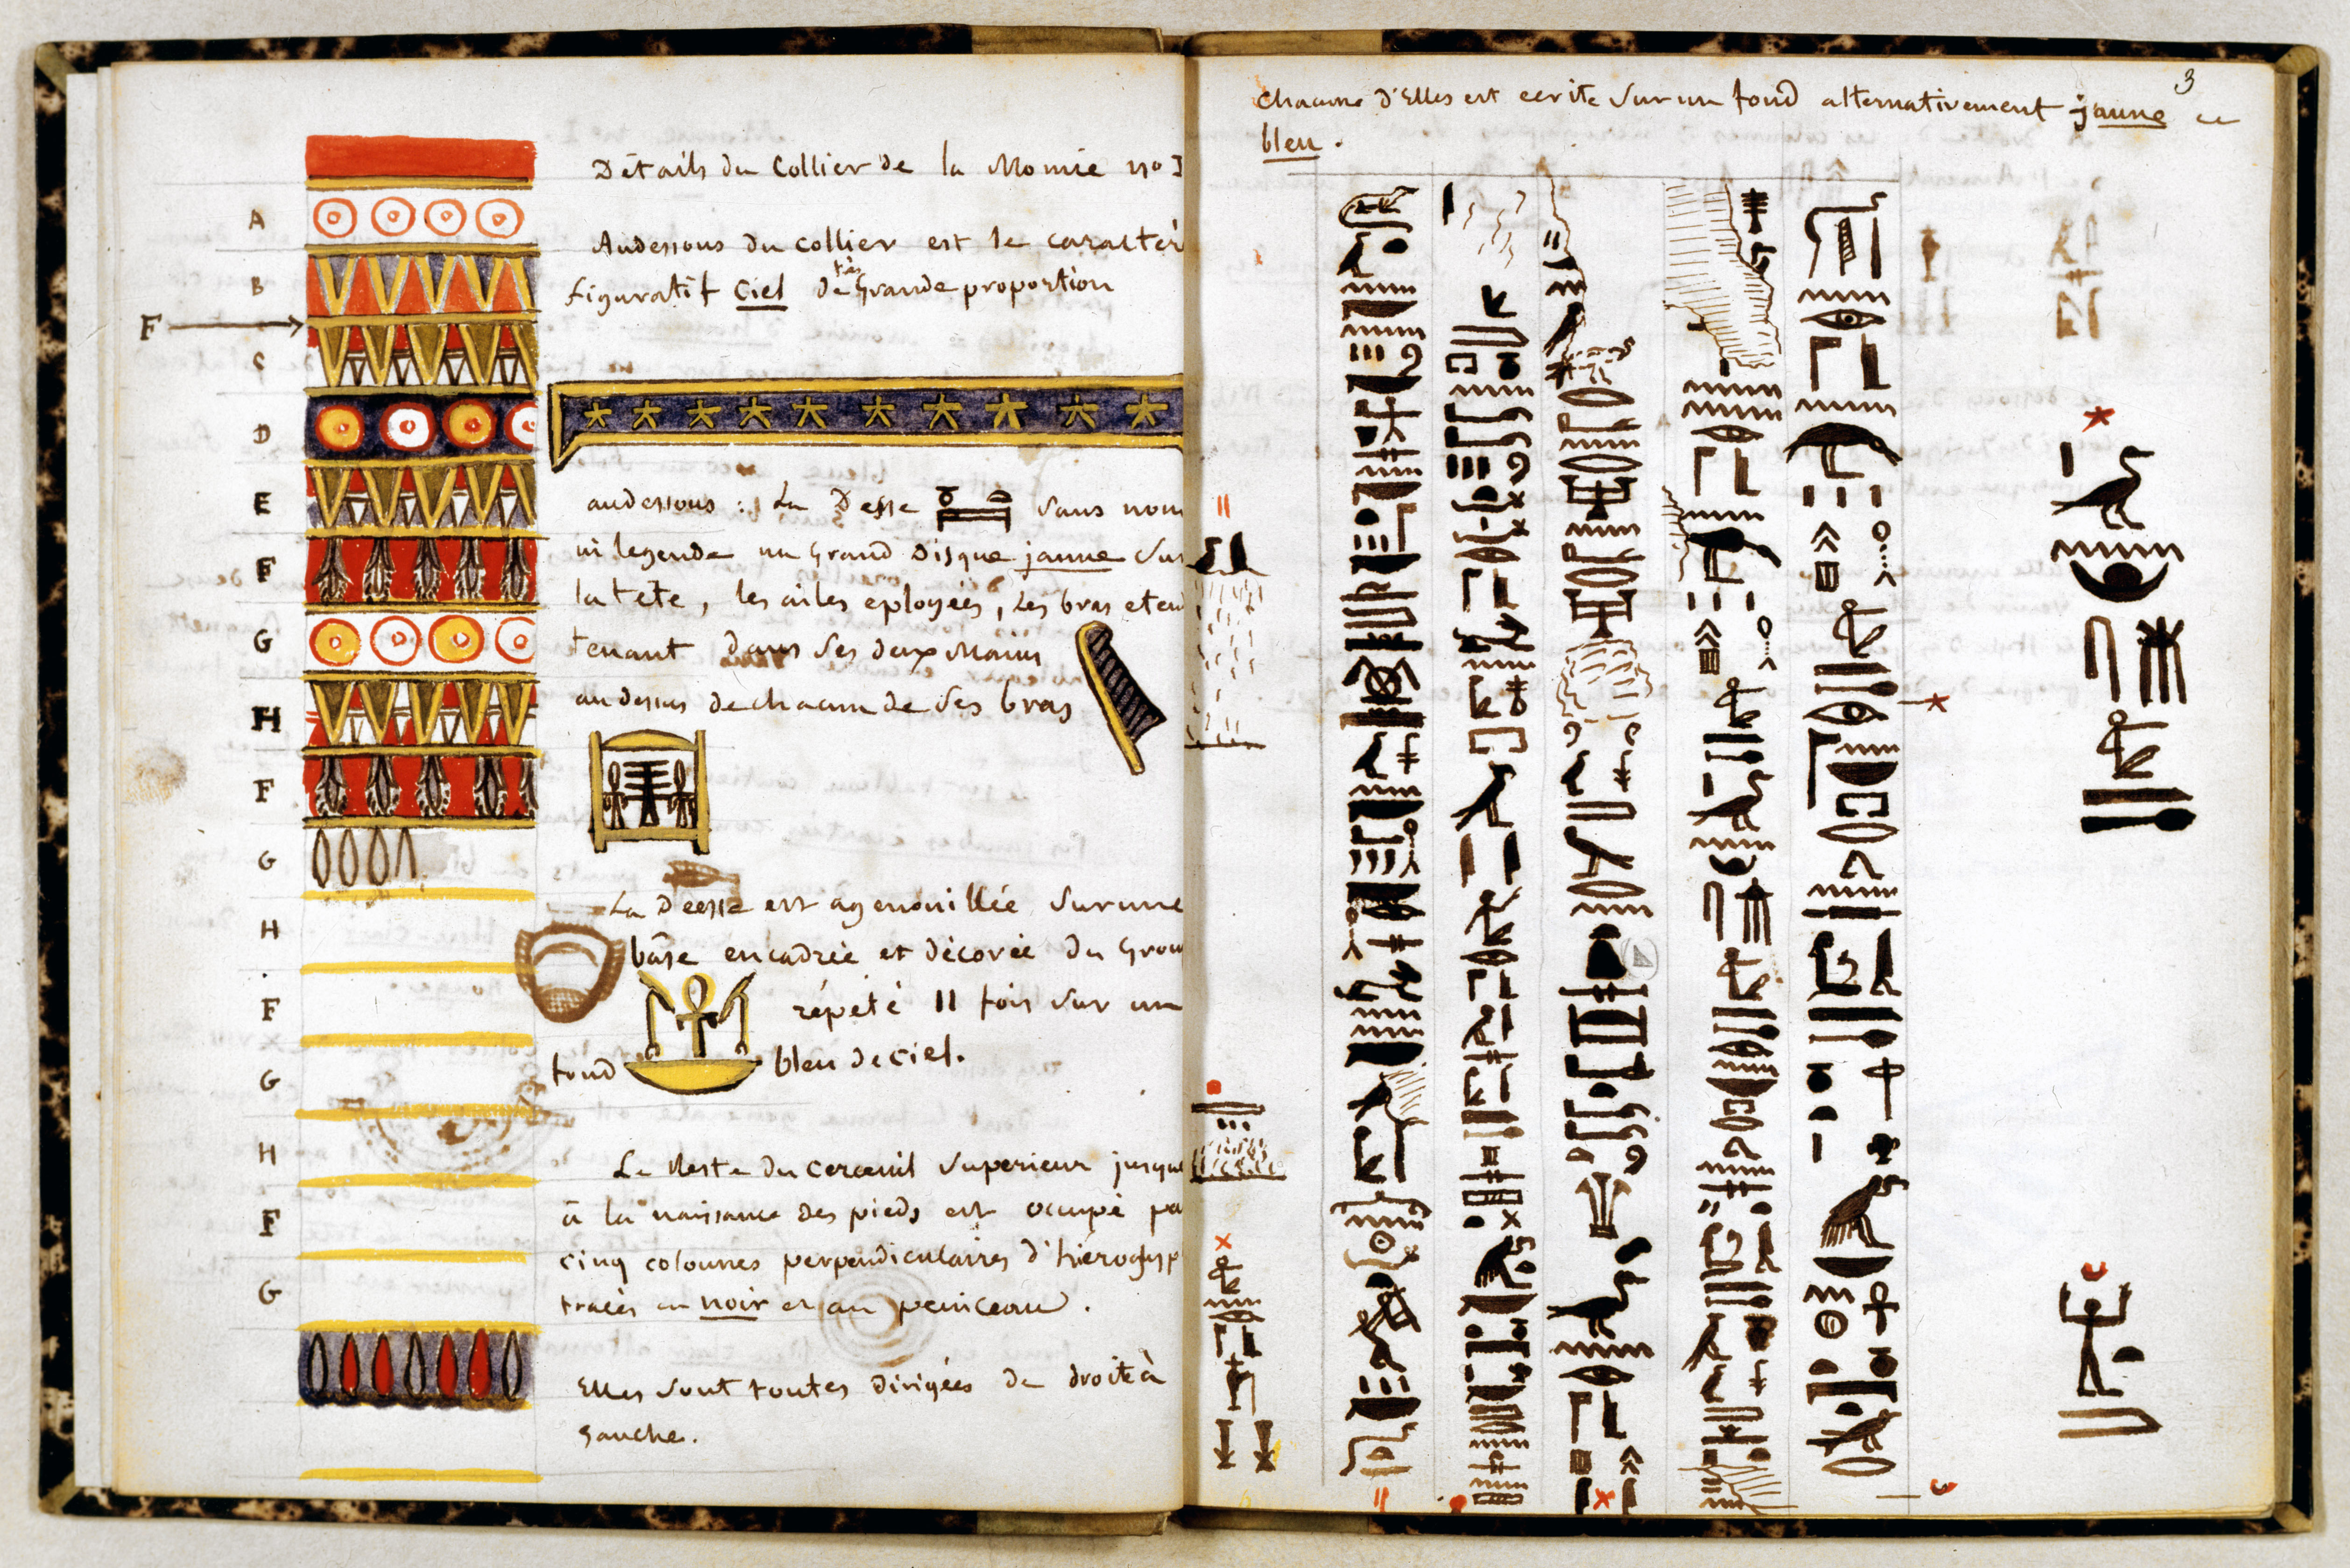 Notes on hieroglyphs in Jean-Francois Champollion notebook, c1806-1832. (Credit: Art Media/Print Collector/Getty Images)